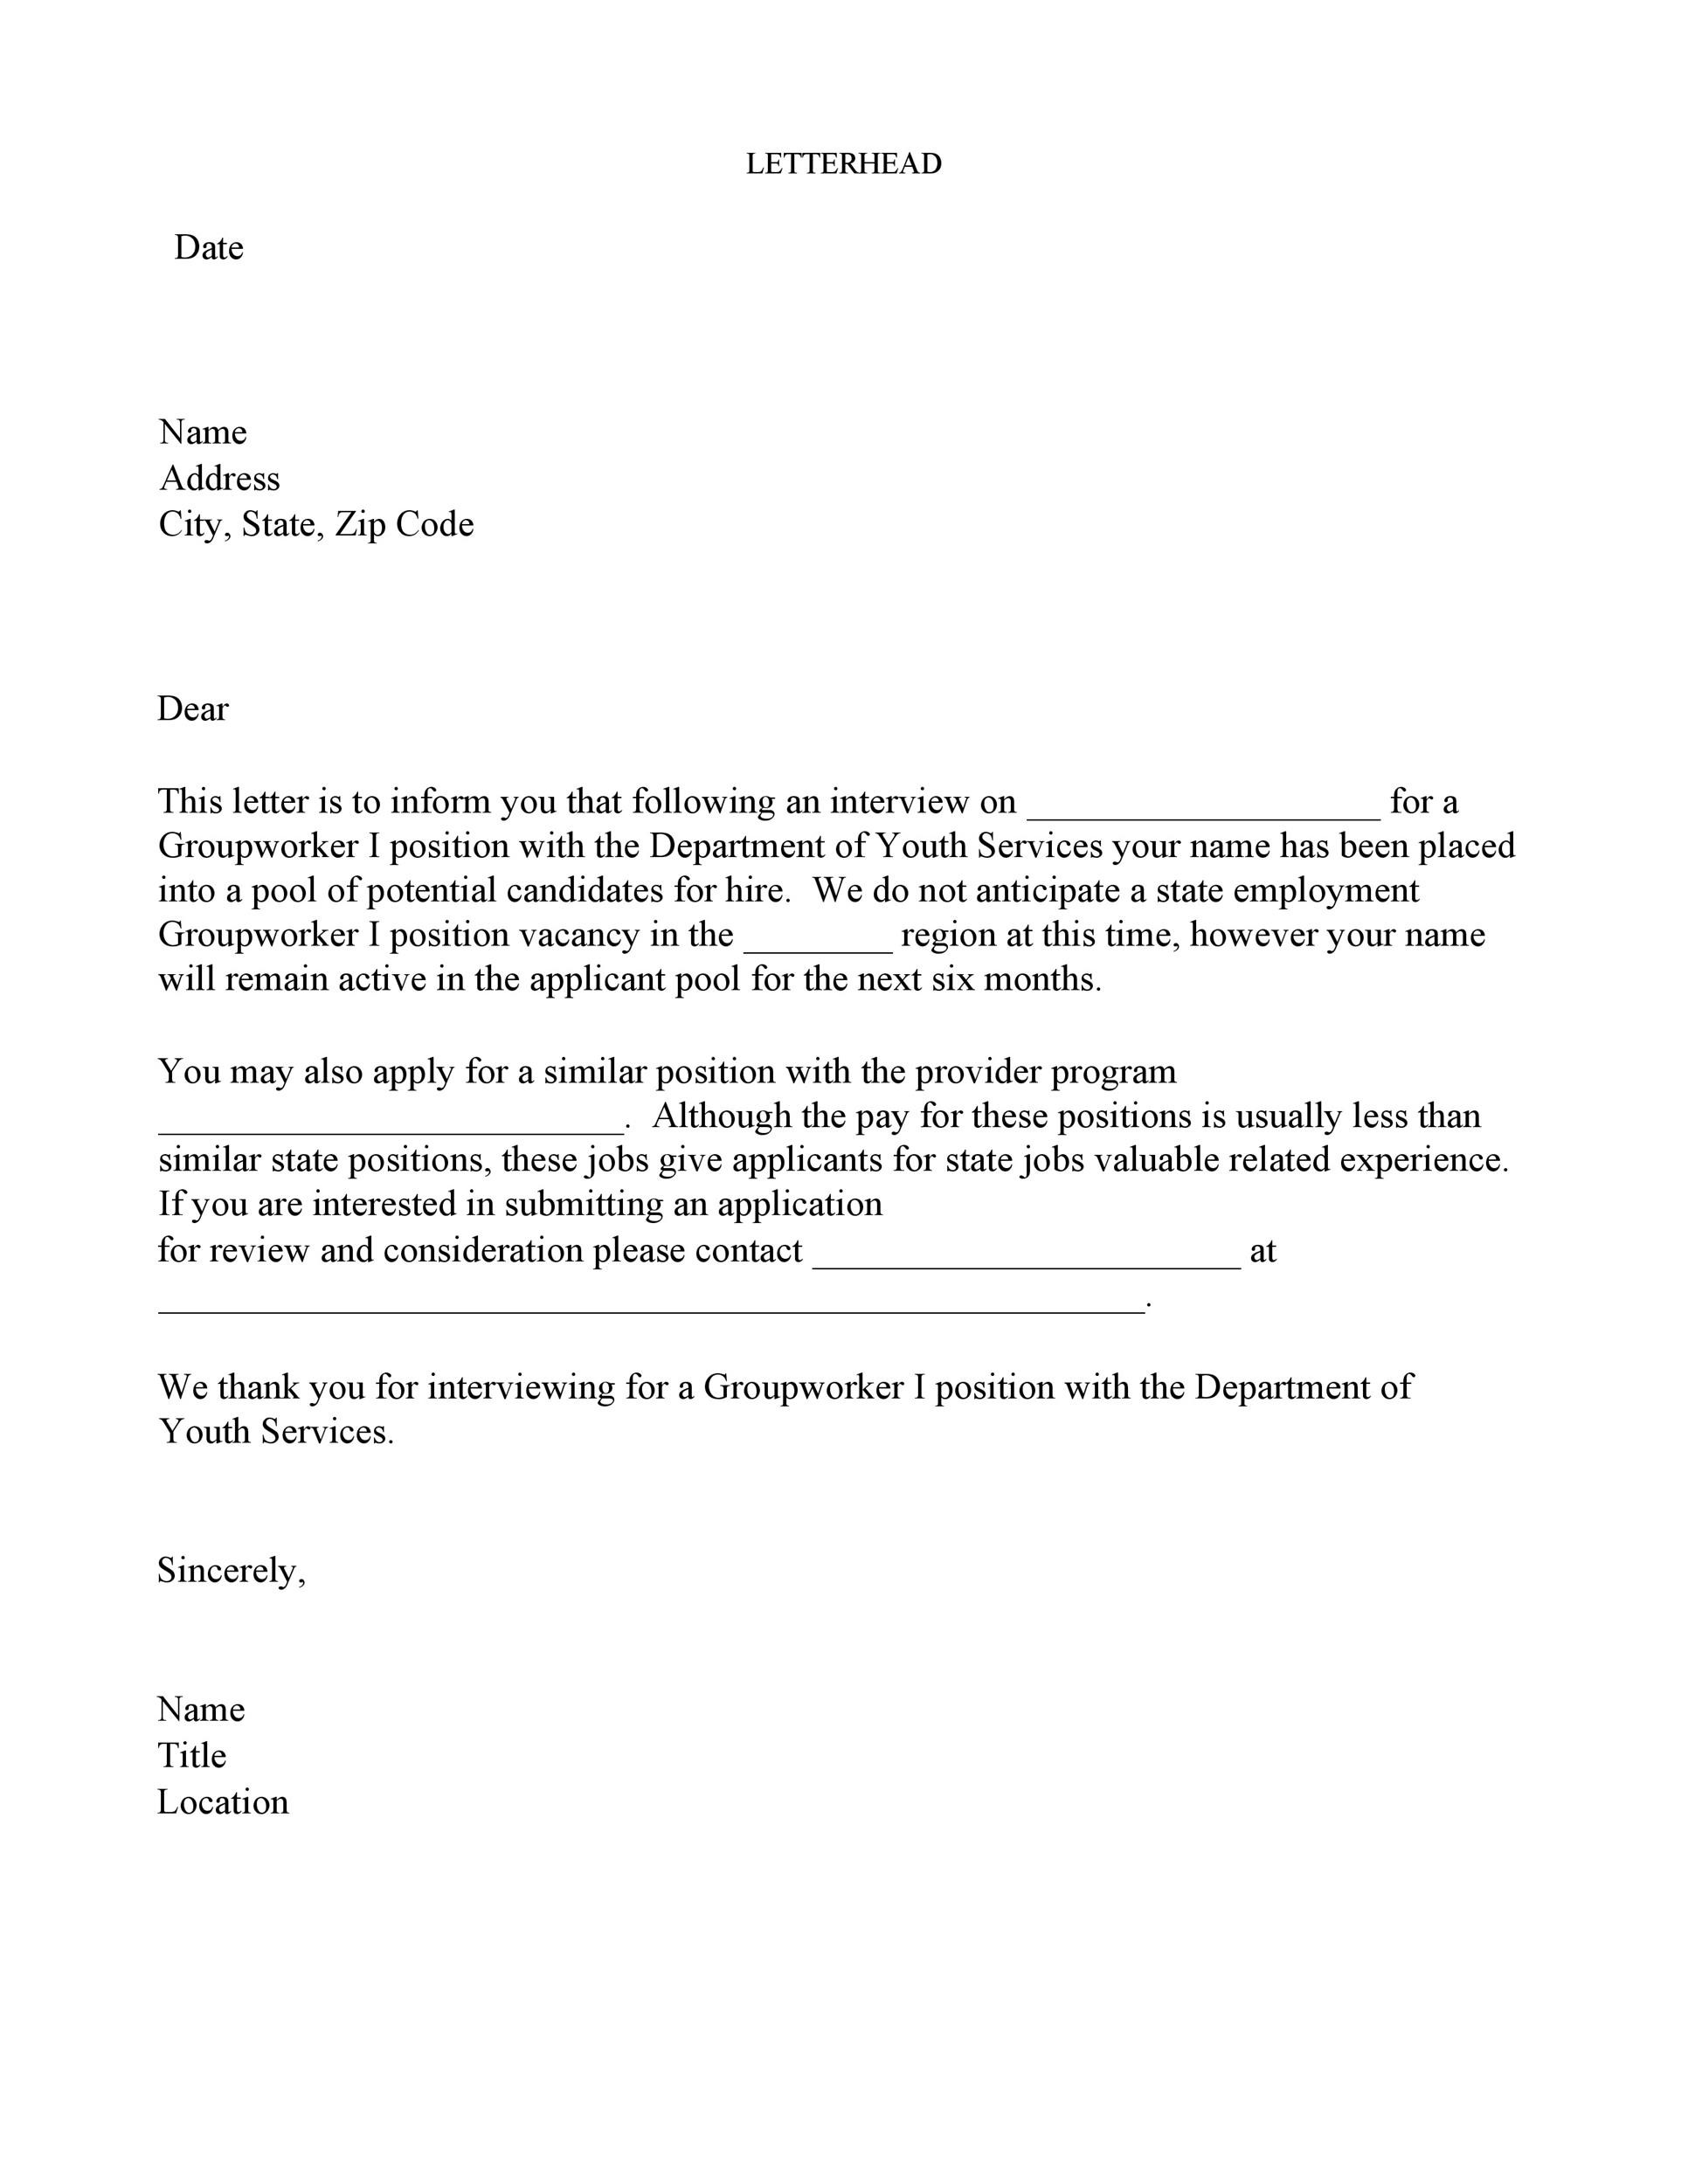 Applicant Rejection Letter After Interview from templatelab.com